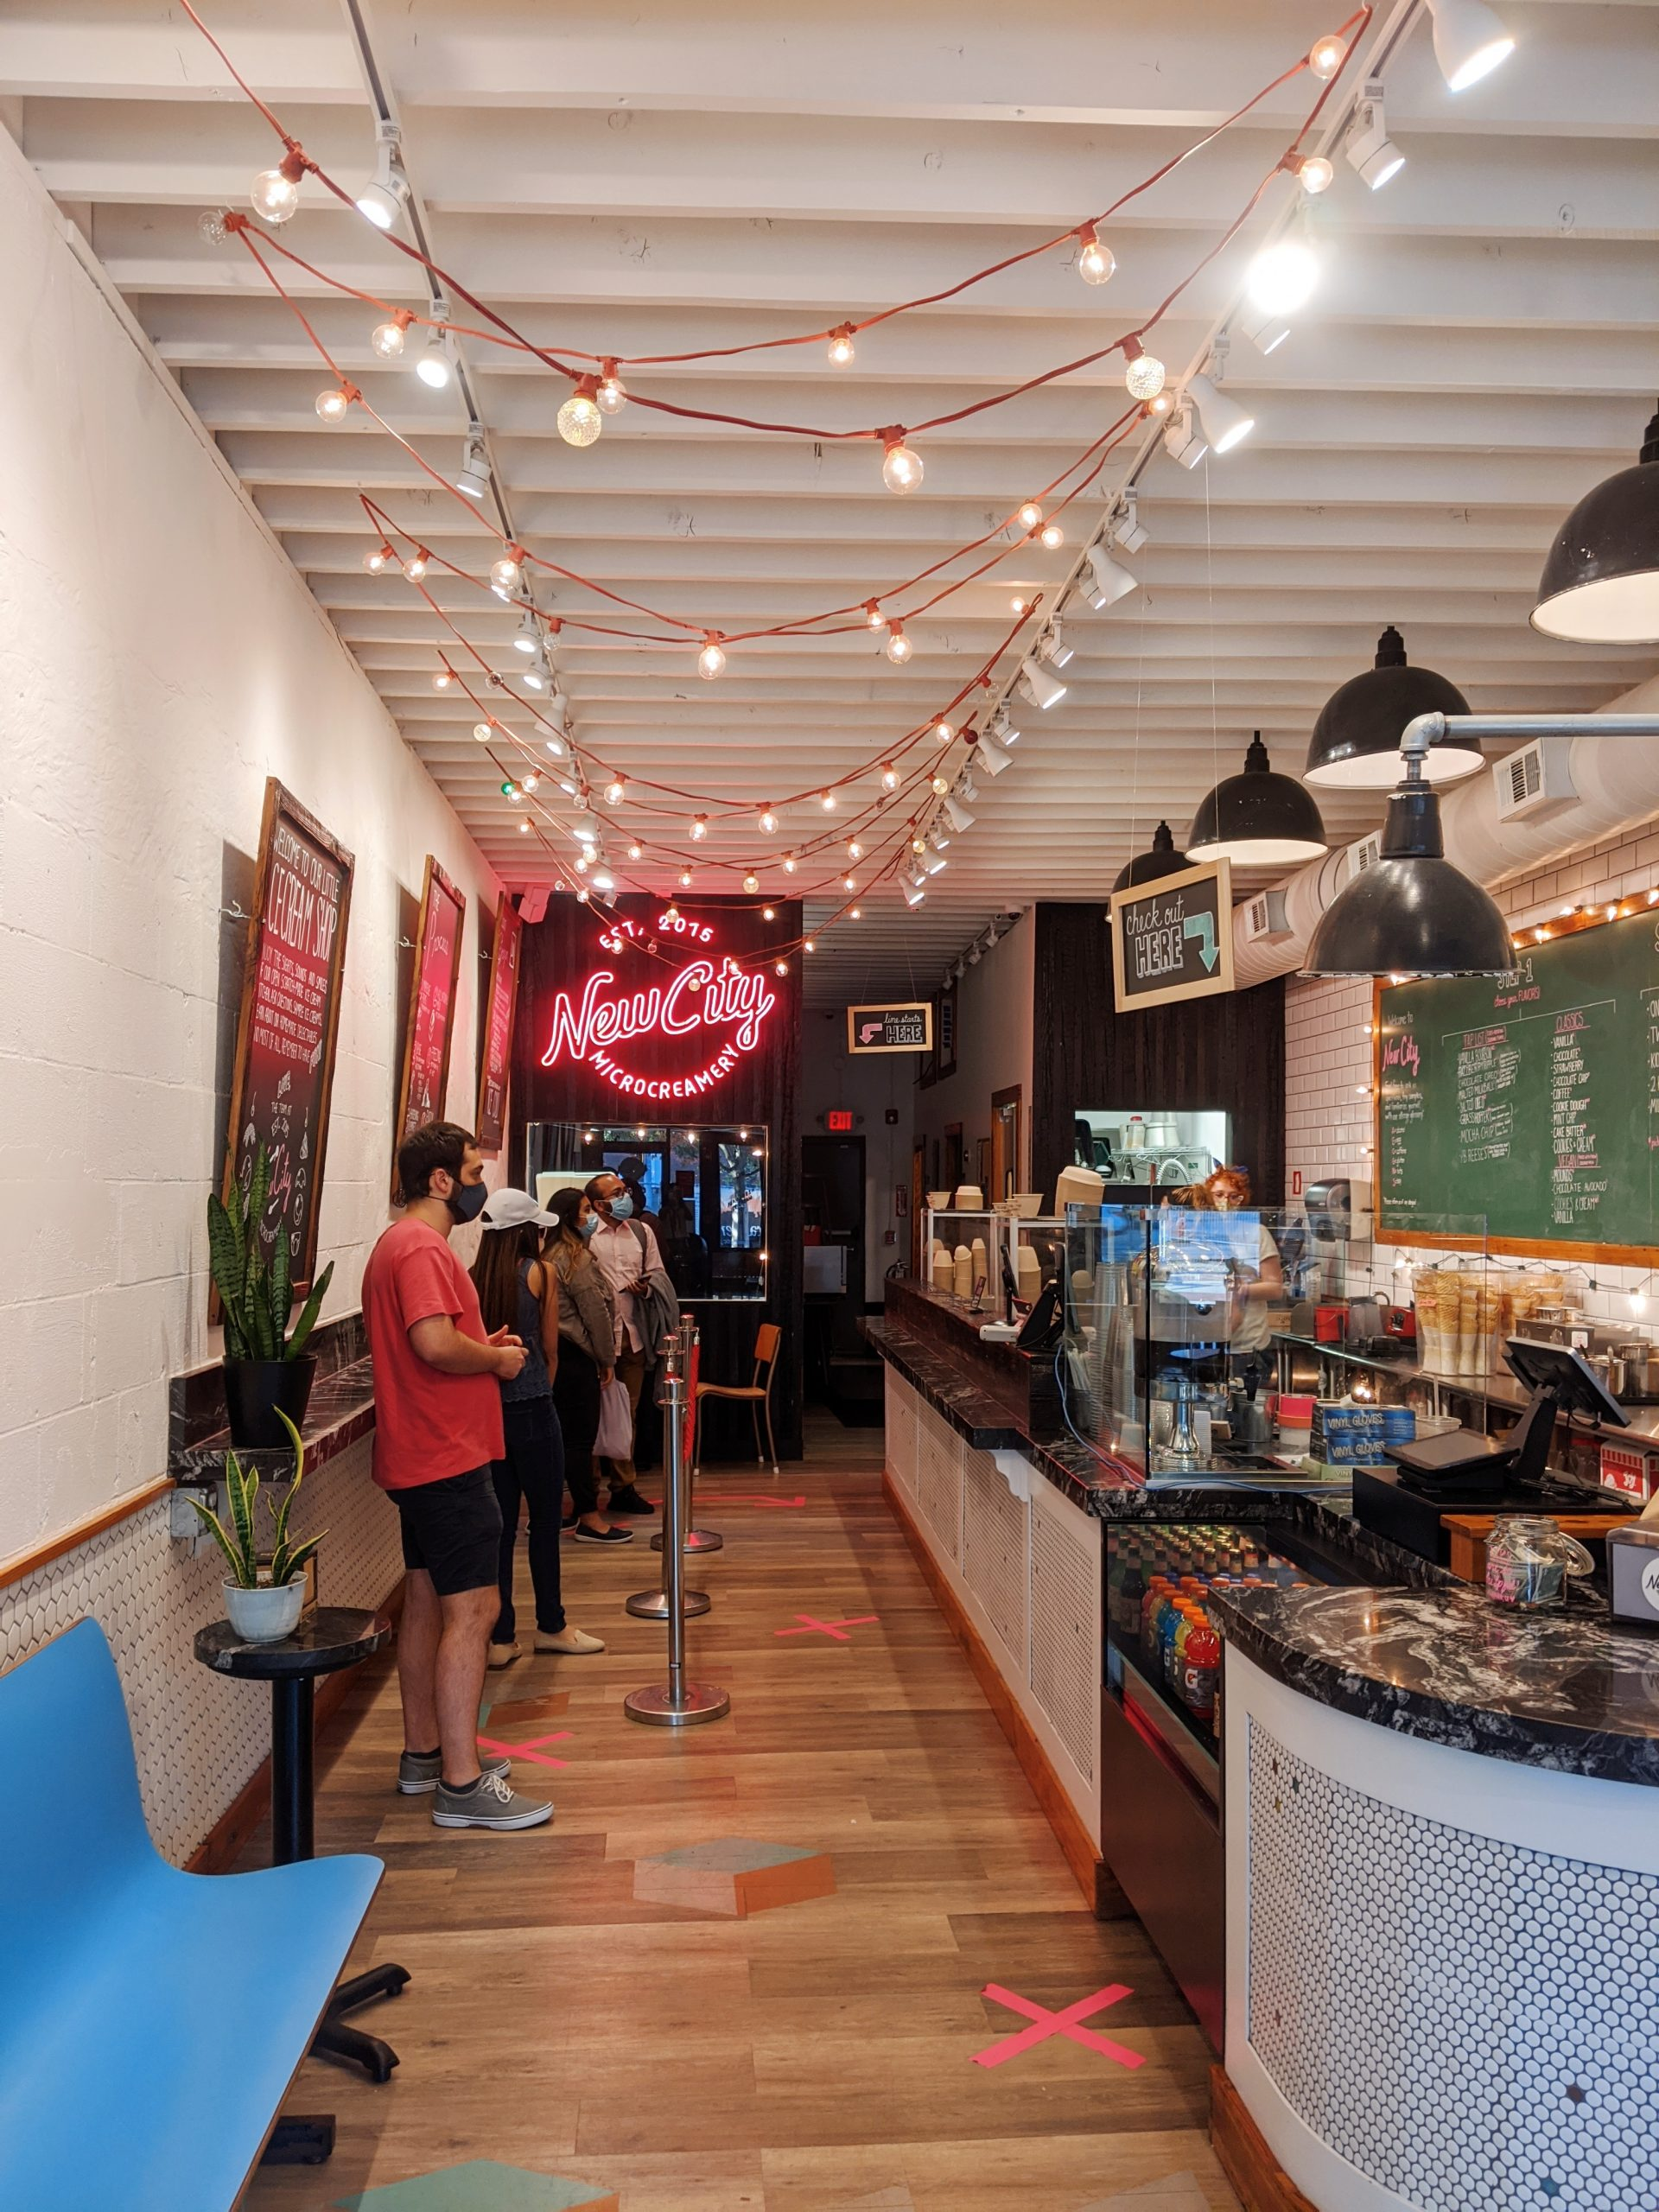 aesthetic ice cream shops etting with hanging lights and a pink neon sign that says 'New City Microcreamery'